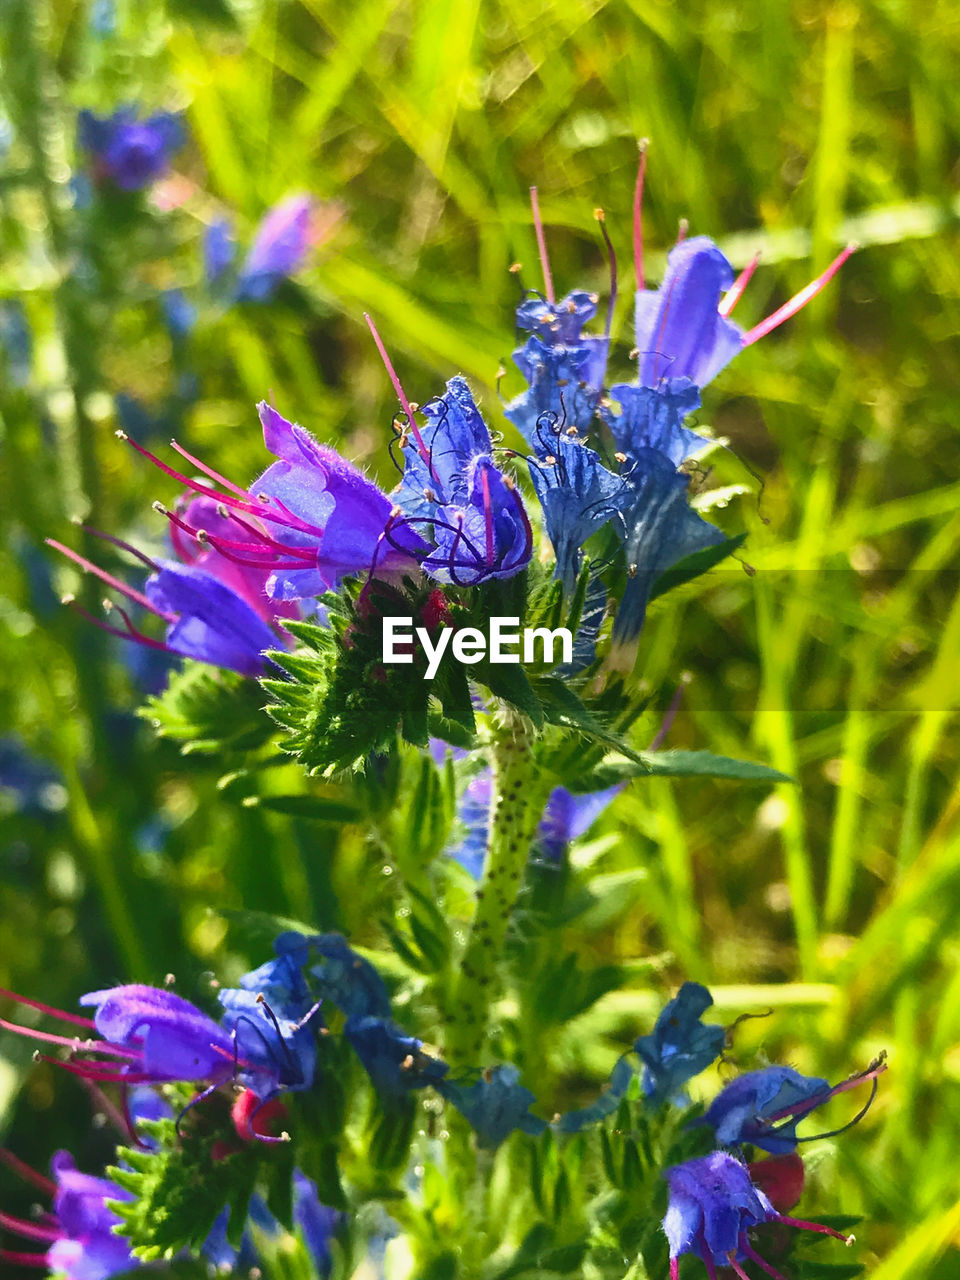 plant, flowering plant, flower, purple, beauty in nature, vulnerability, fragility, growth, freshness, petal, close-up, nature, blue, inflorescence, flower head, no people, day, focus on foreground, field, land, outdoors, pollination